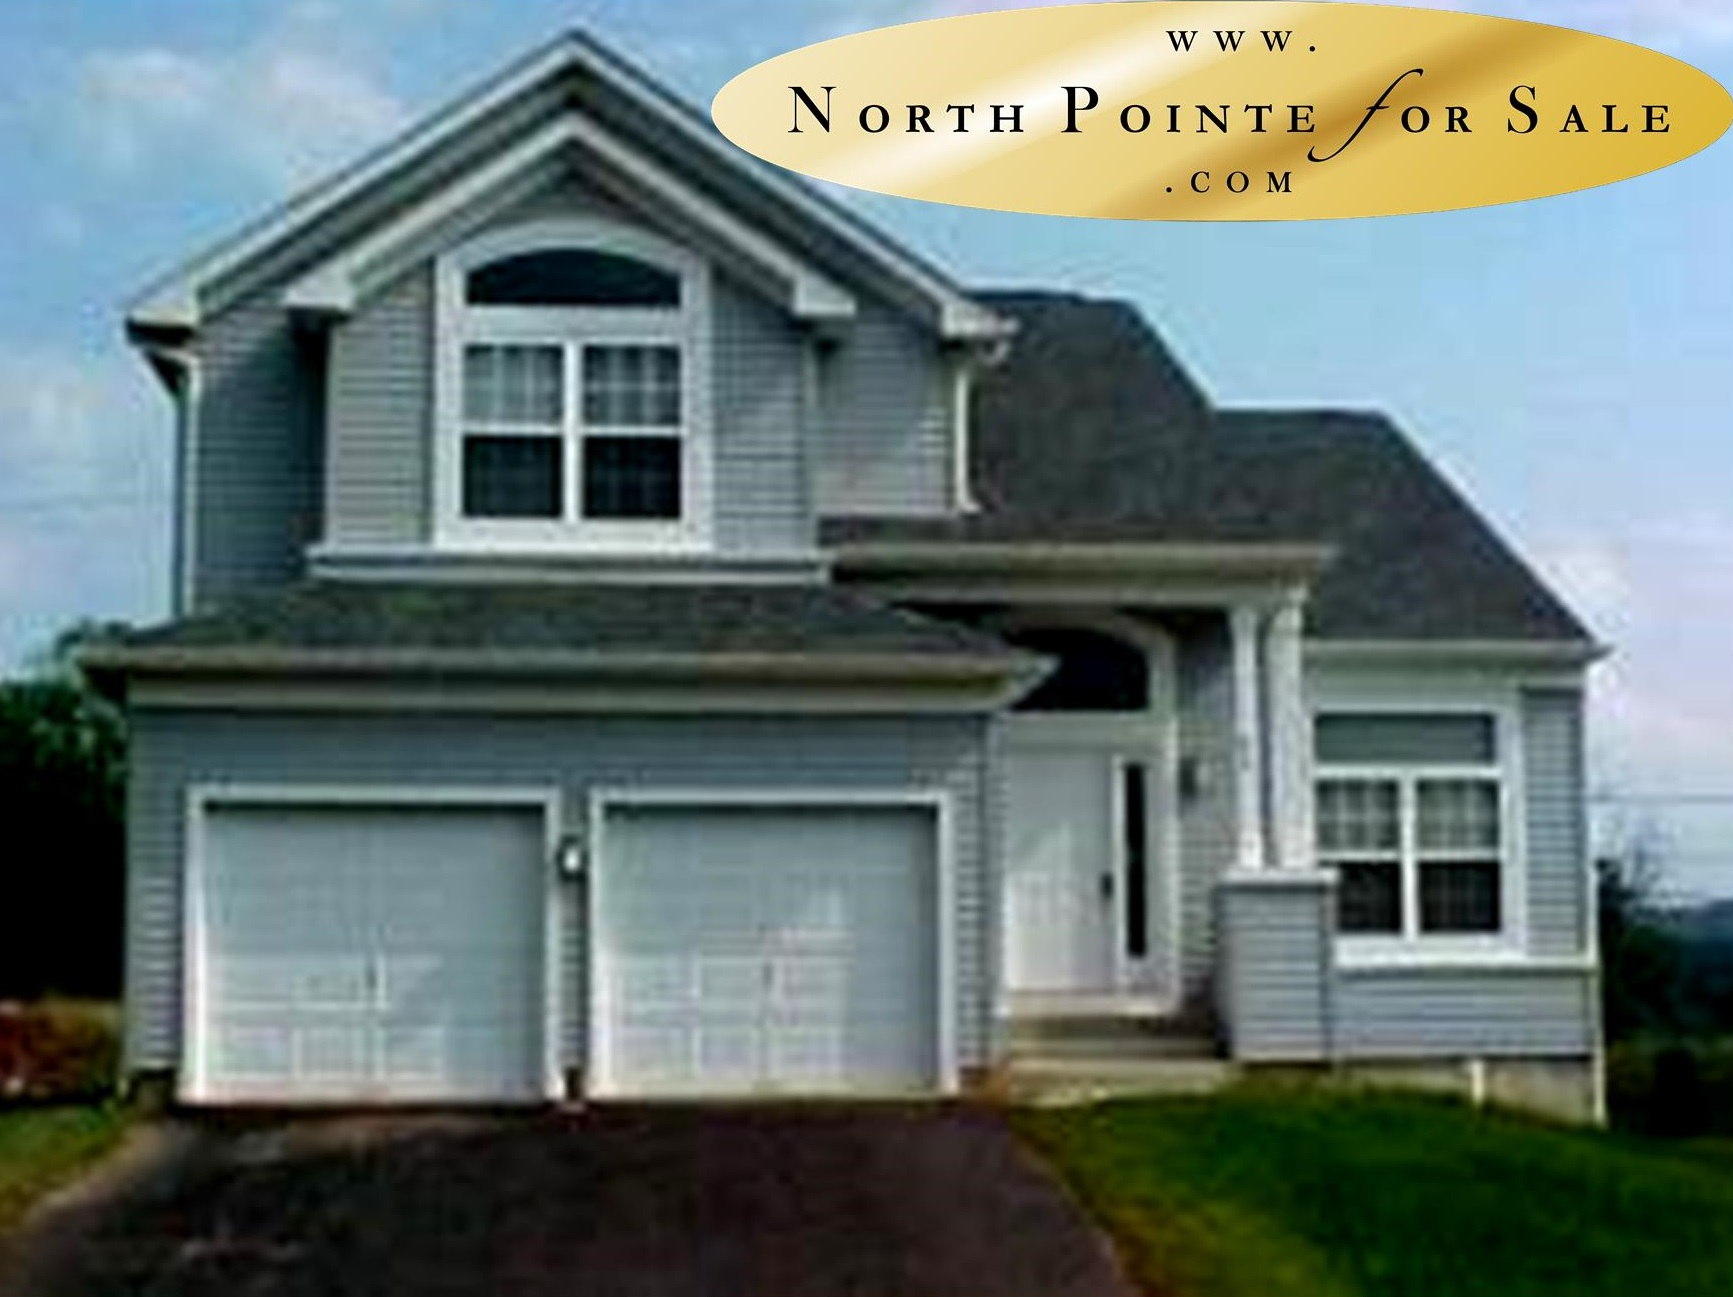 North Pointe Homes in New Hope PA | North Pointe Realtor